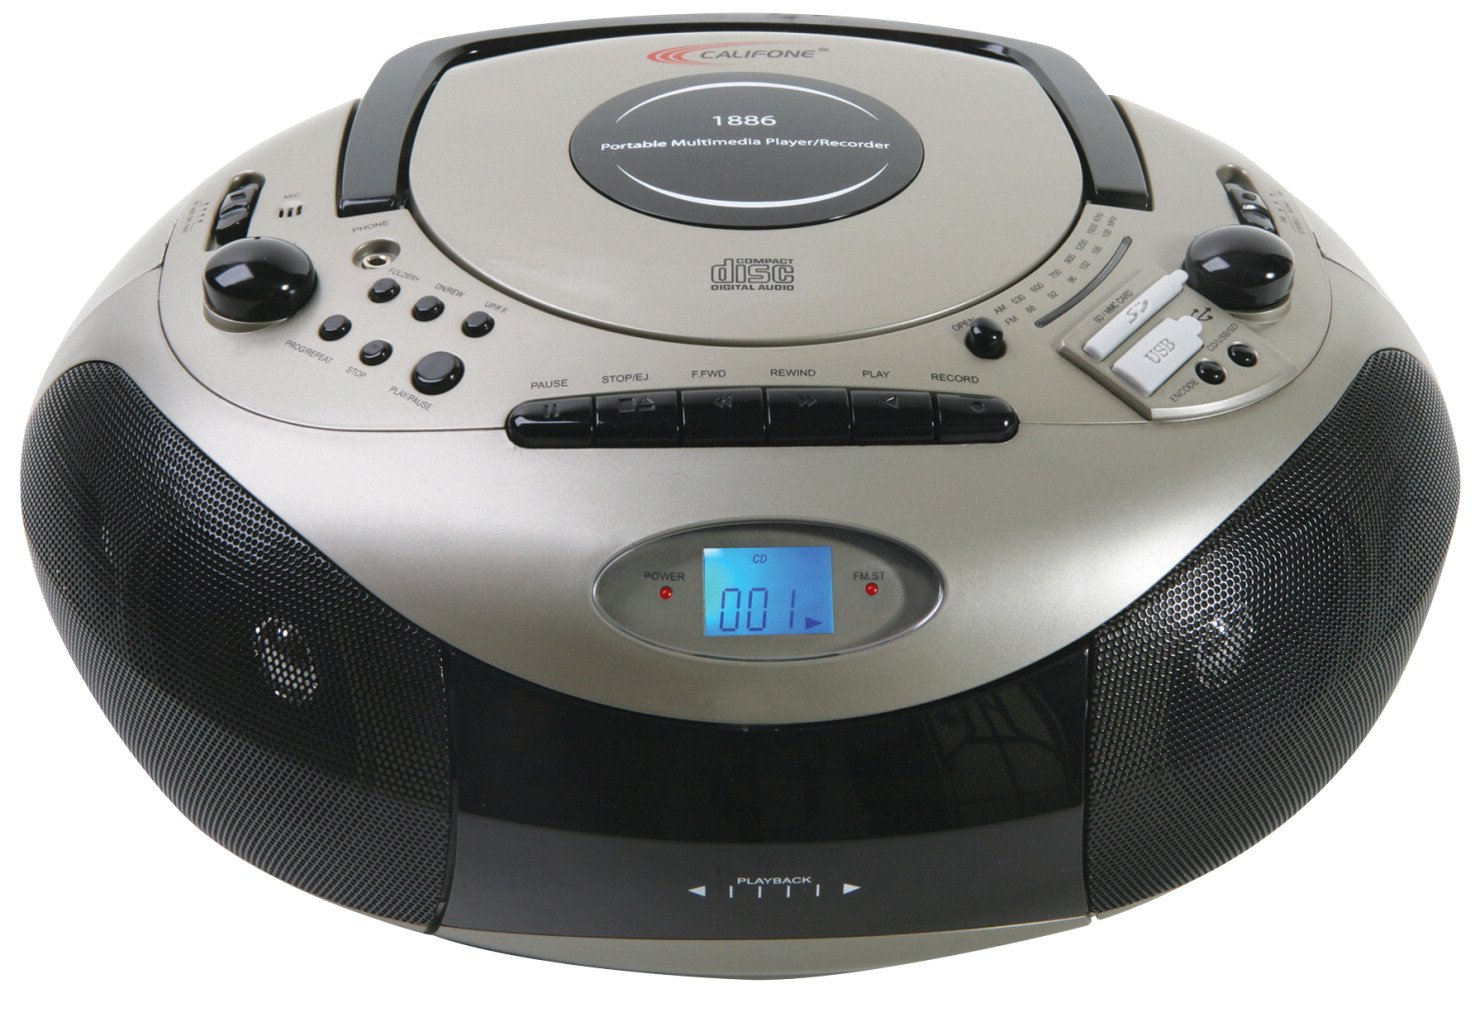 Califone 1886 Spirit SD Multimedia CD Player Cassette Recorder AM/FM Radio Boombox by Califone